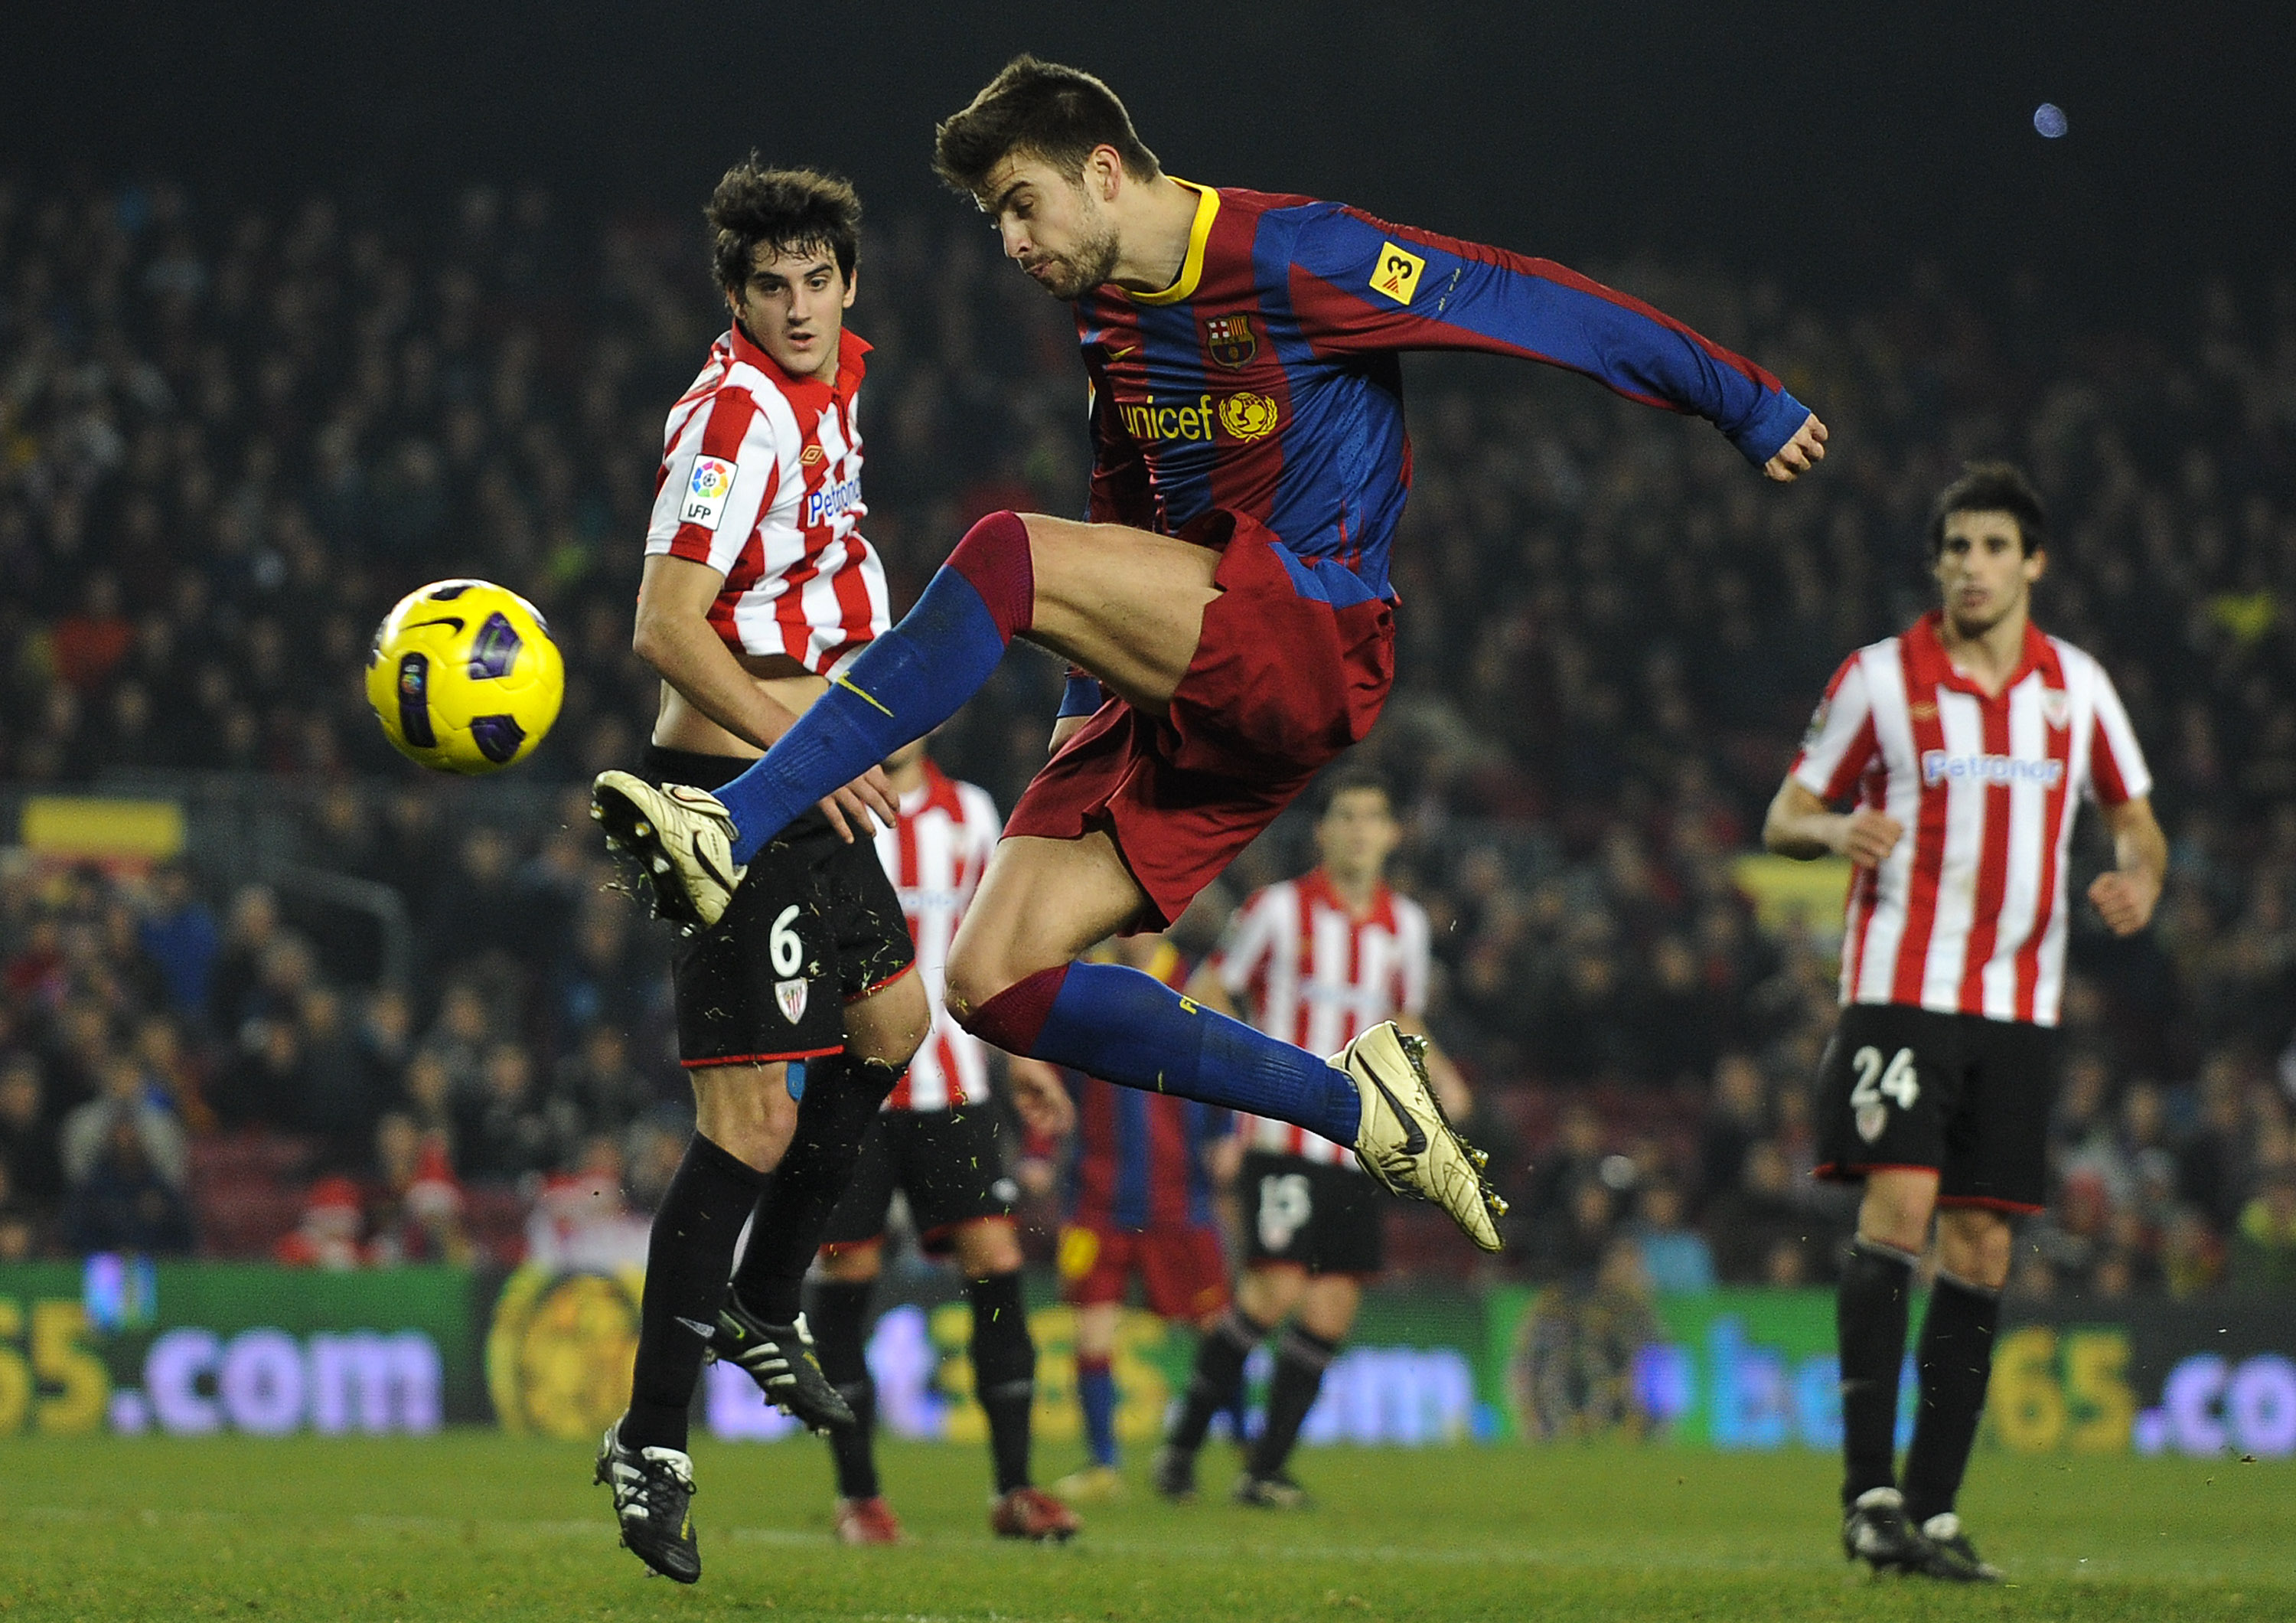 BARCELONA, SPAIN - DECEMBER 21:  Gerard Pique of FC Barcelona shoots at goal during the round of last 16 Copa del Rey match between FC Barcelona and Athletic Bilbao at Camp Nou on December 21, 2010 in Barcelona, Spain. The match ended 0-0.  (Photo by Davi